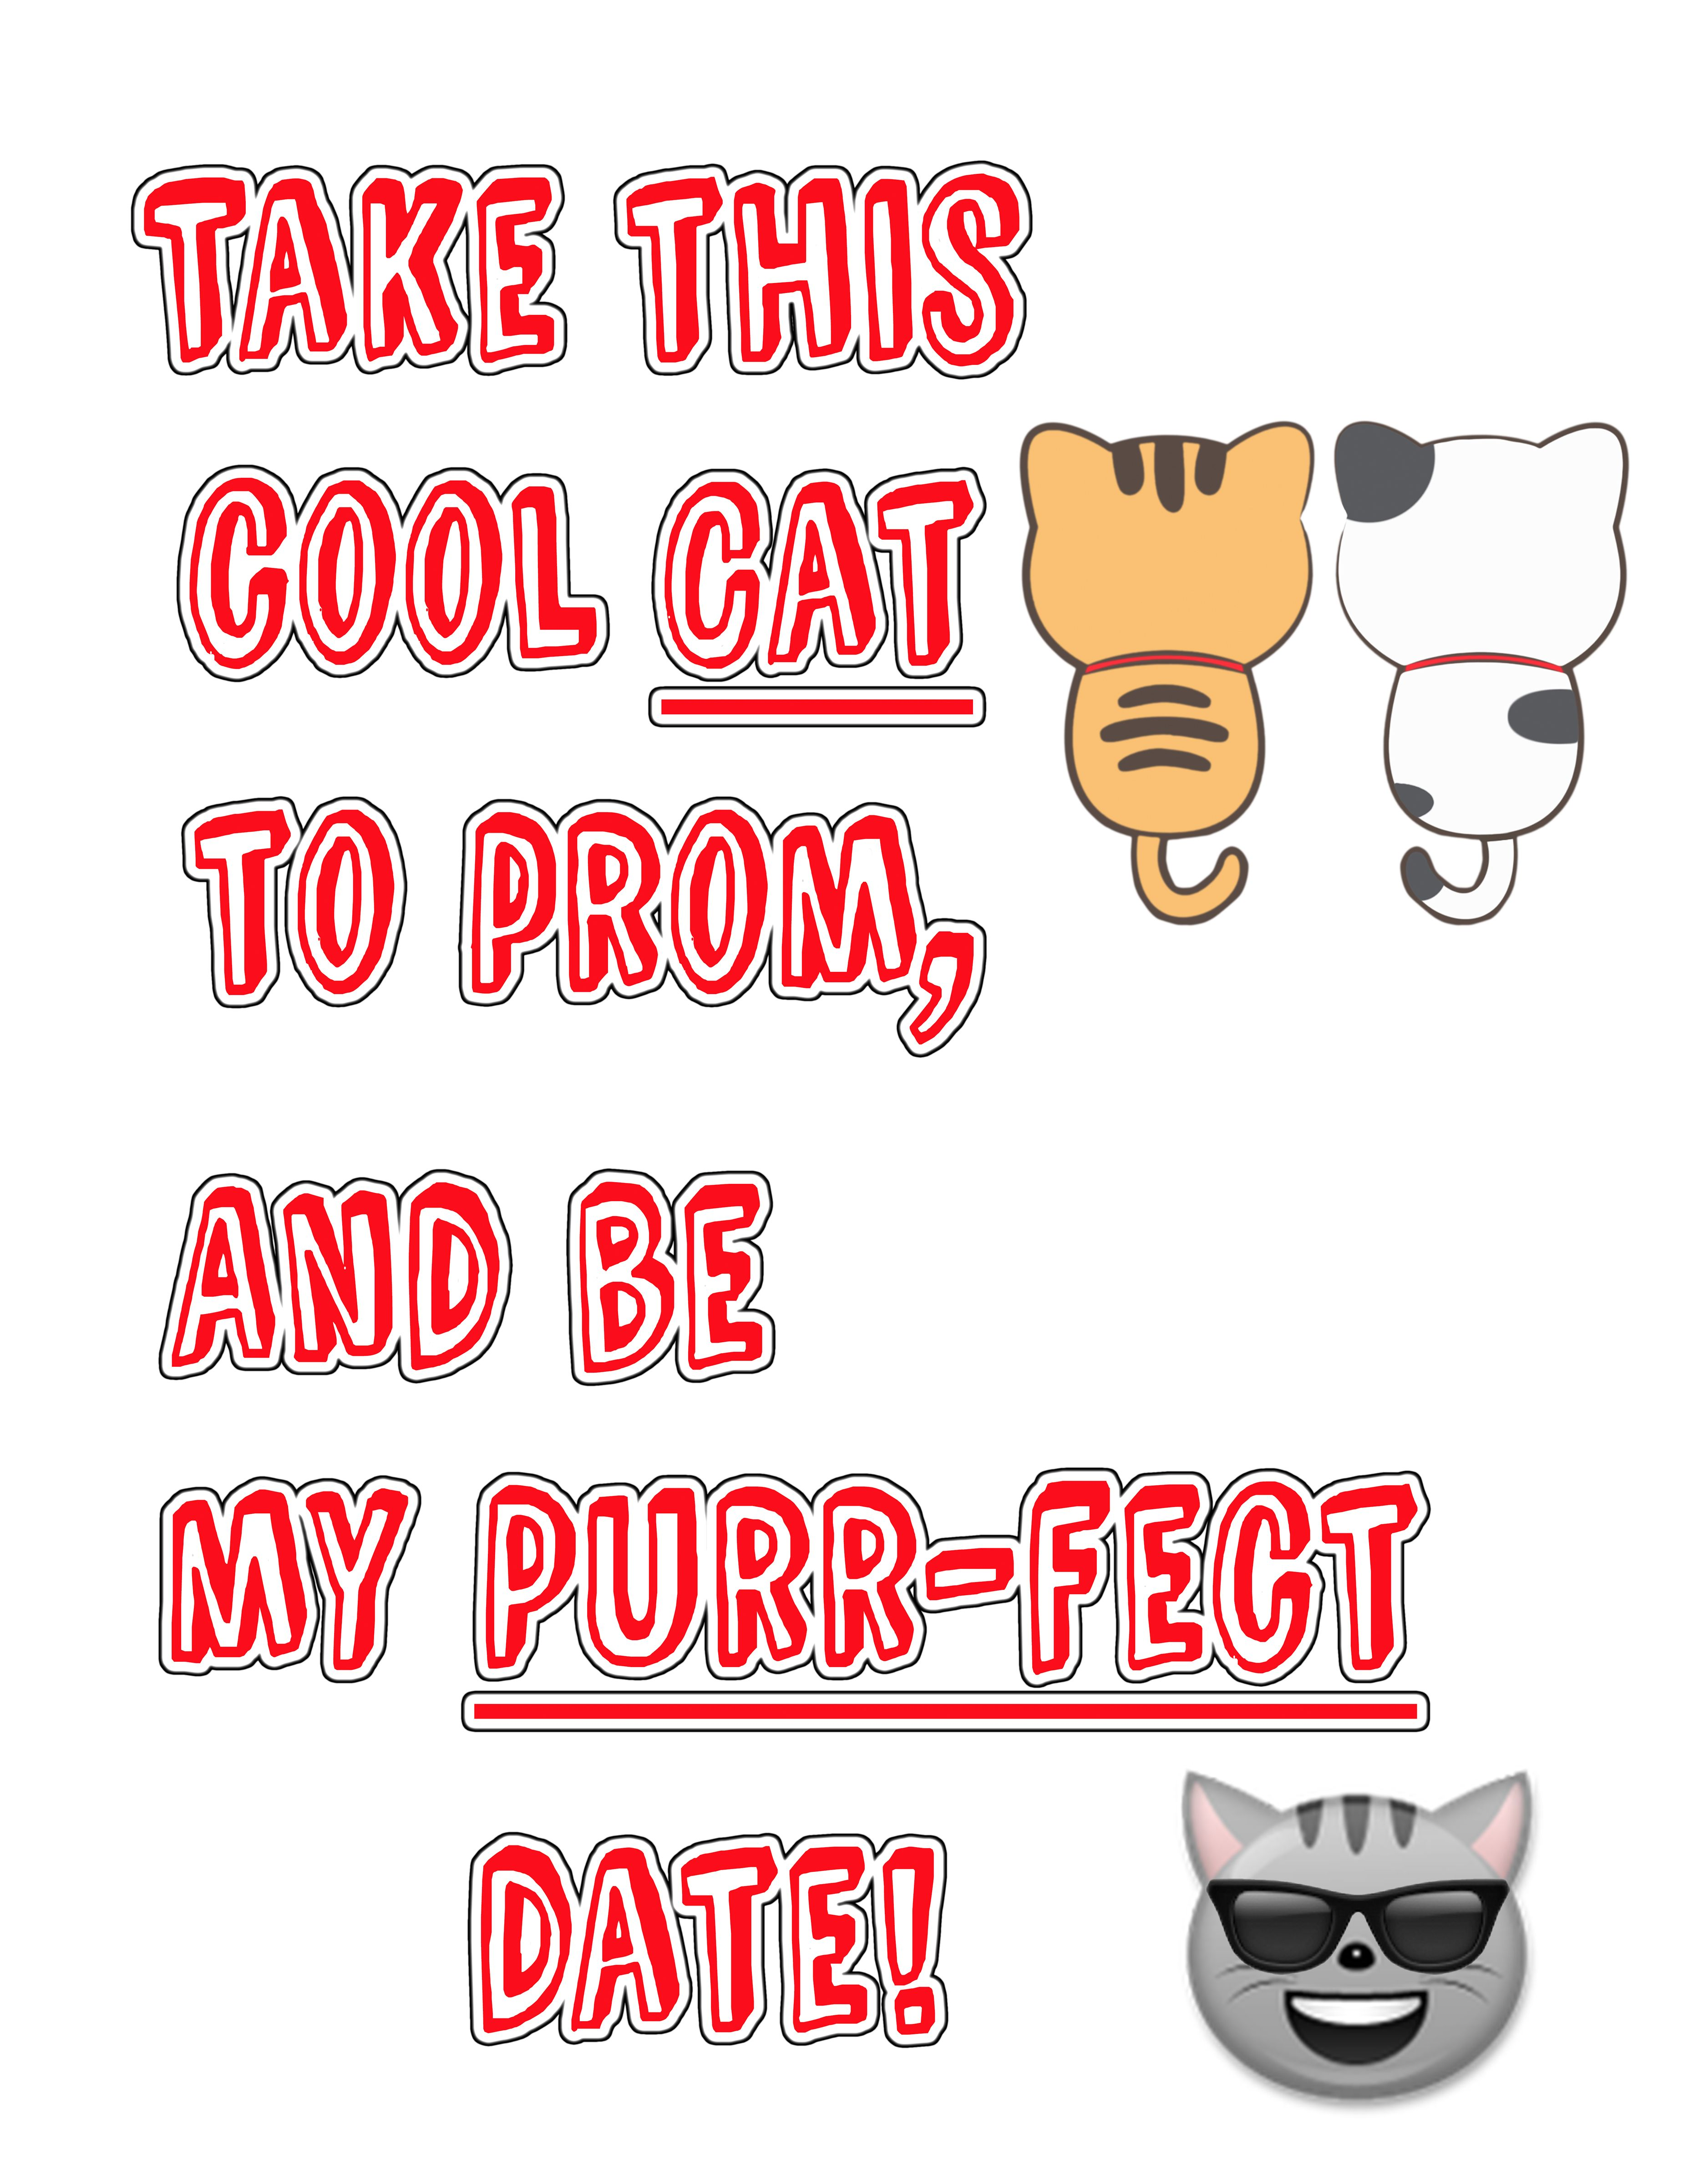 Take this cool cat to prom/ and be my purrrect date! Prom